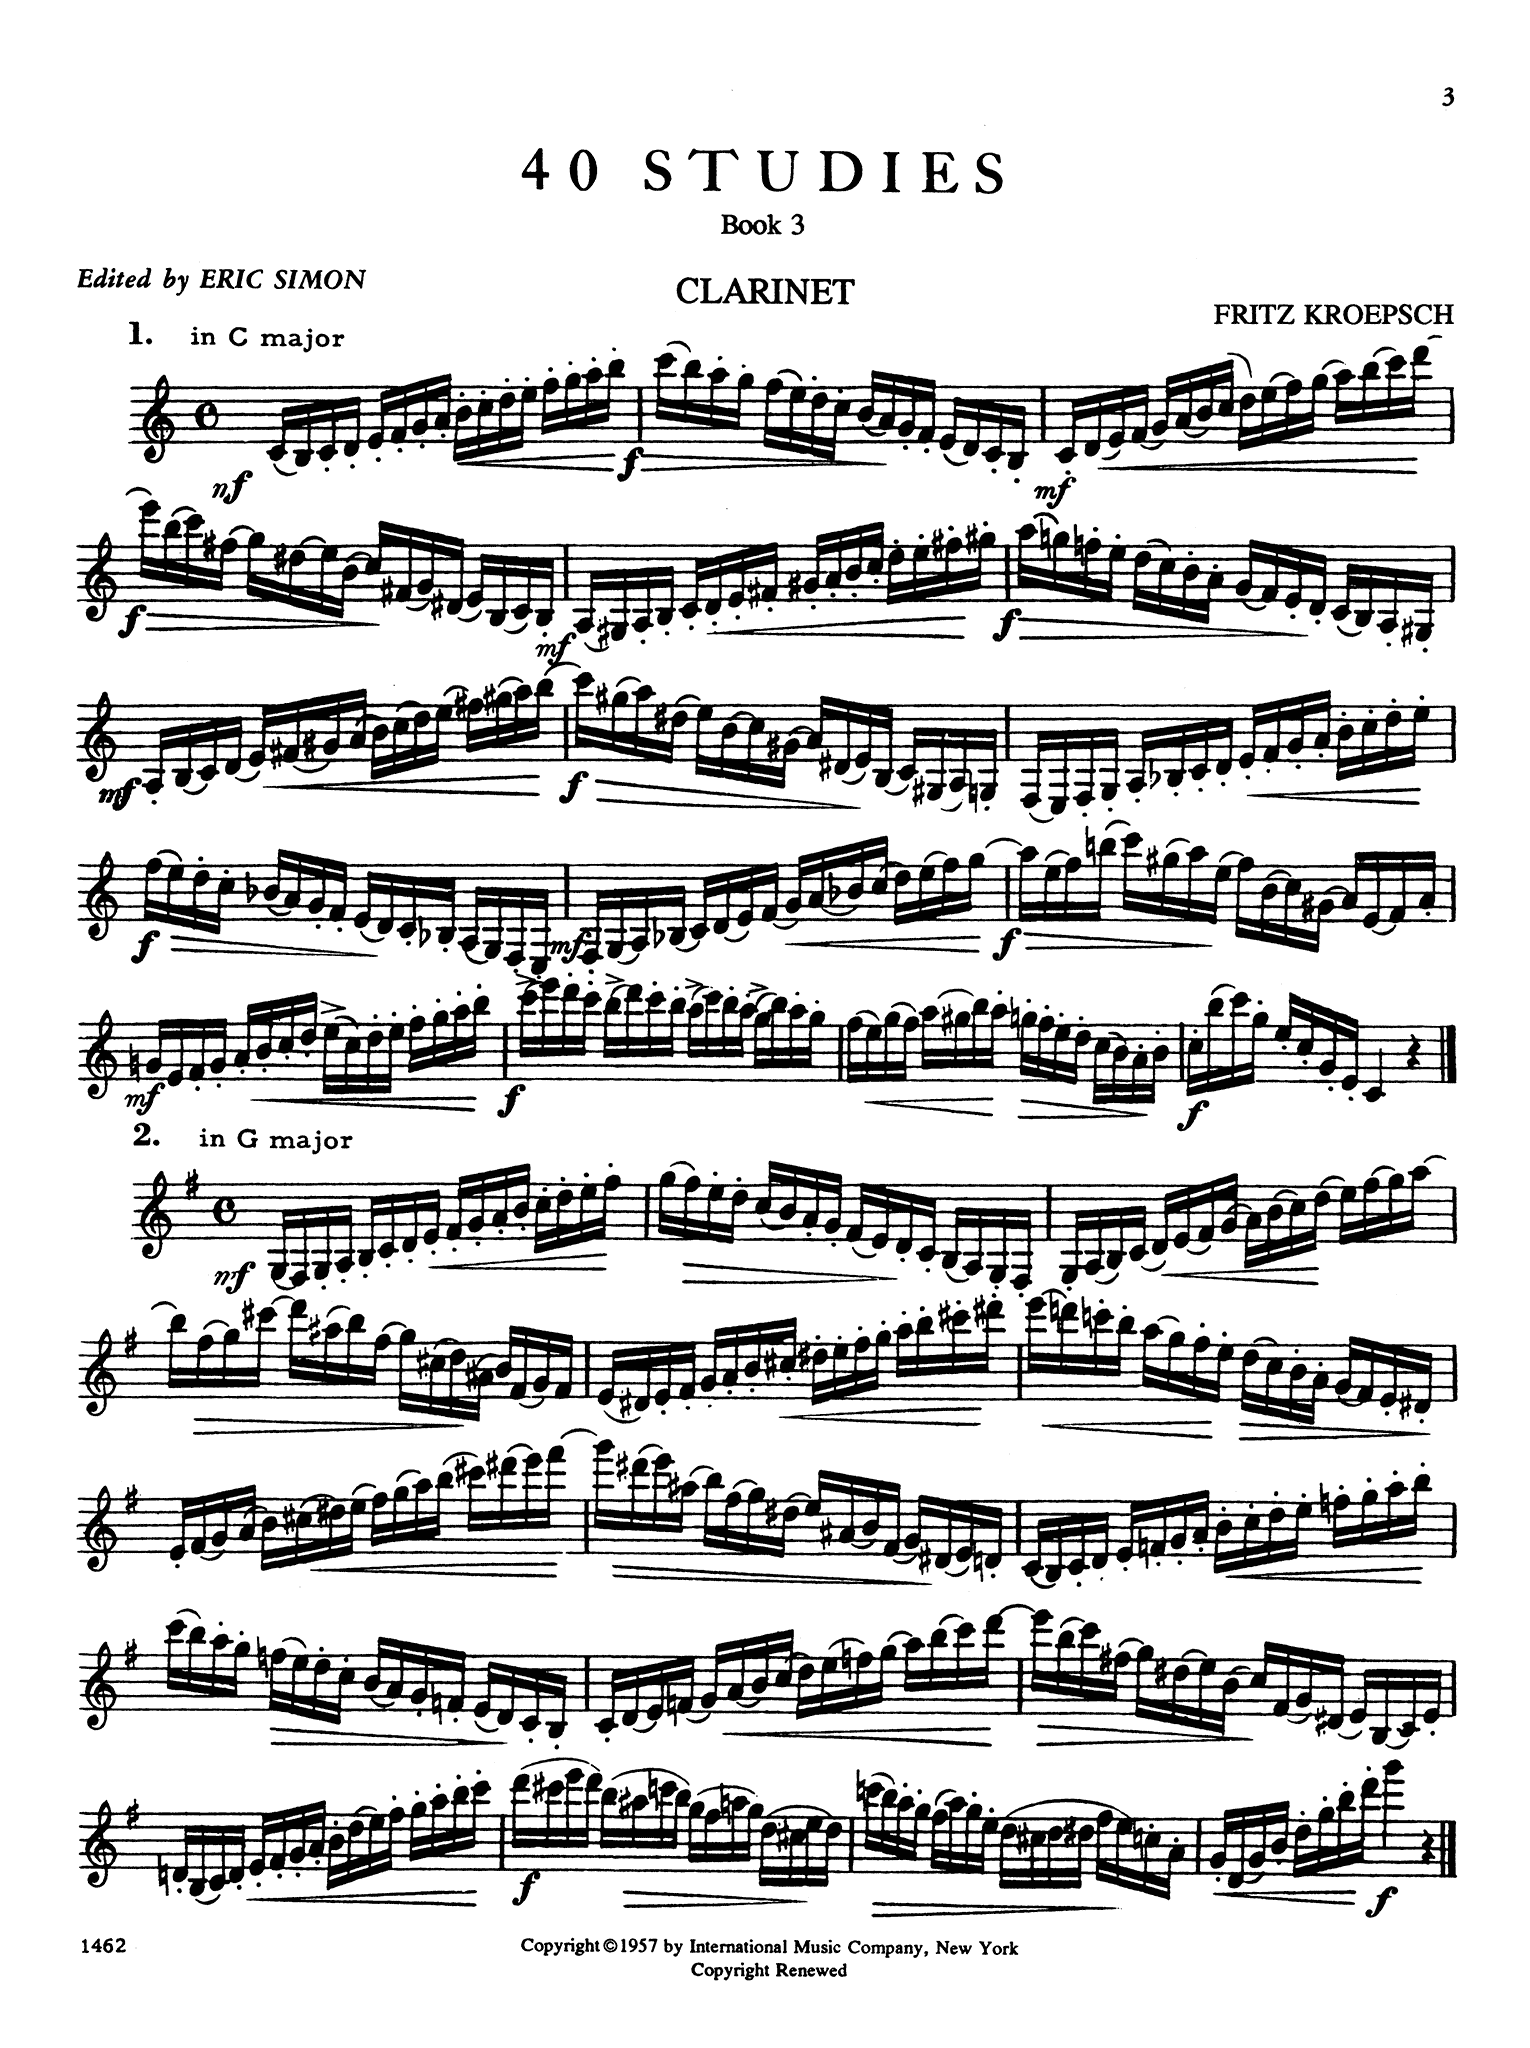 416 Progressive Studies for Clarinet, Book 3 Page 3